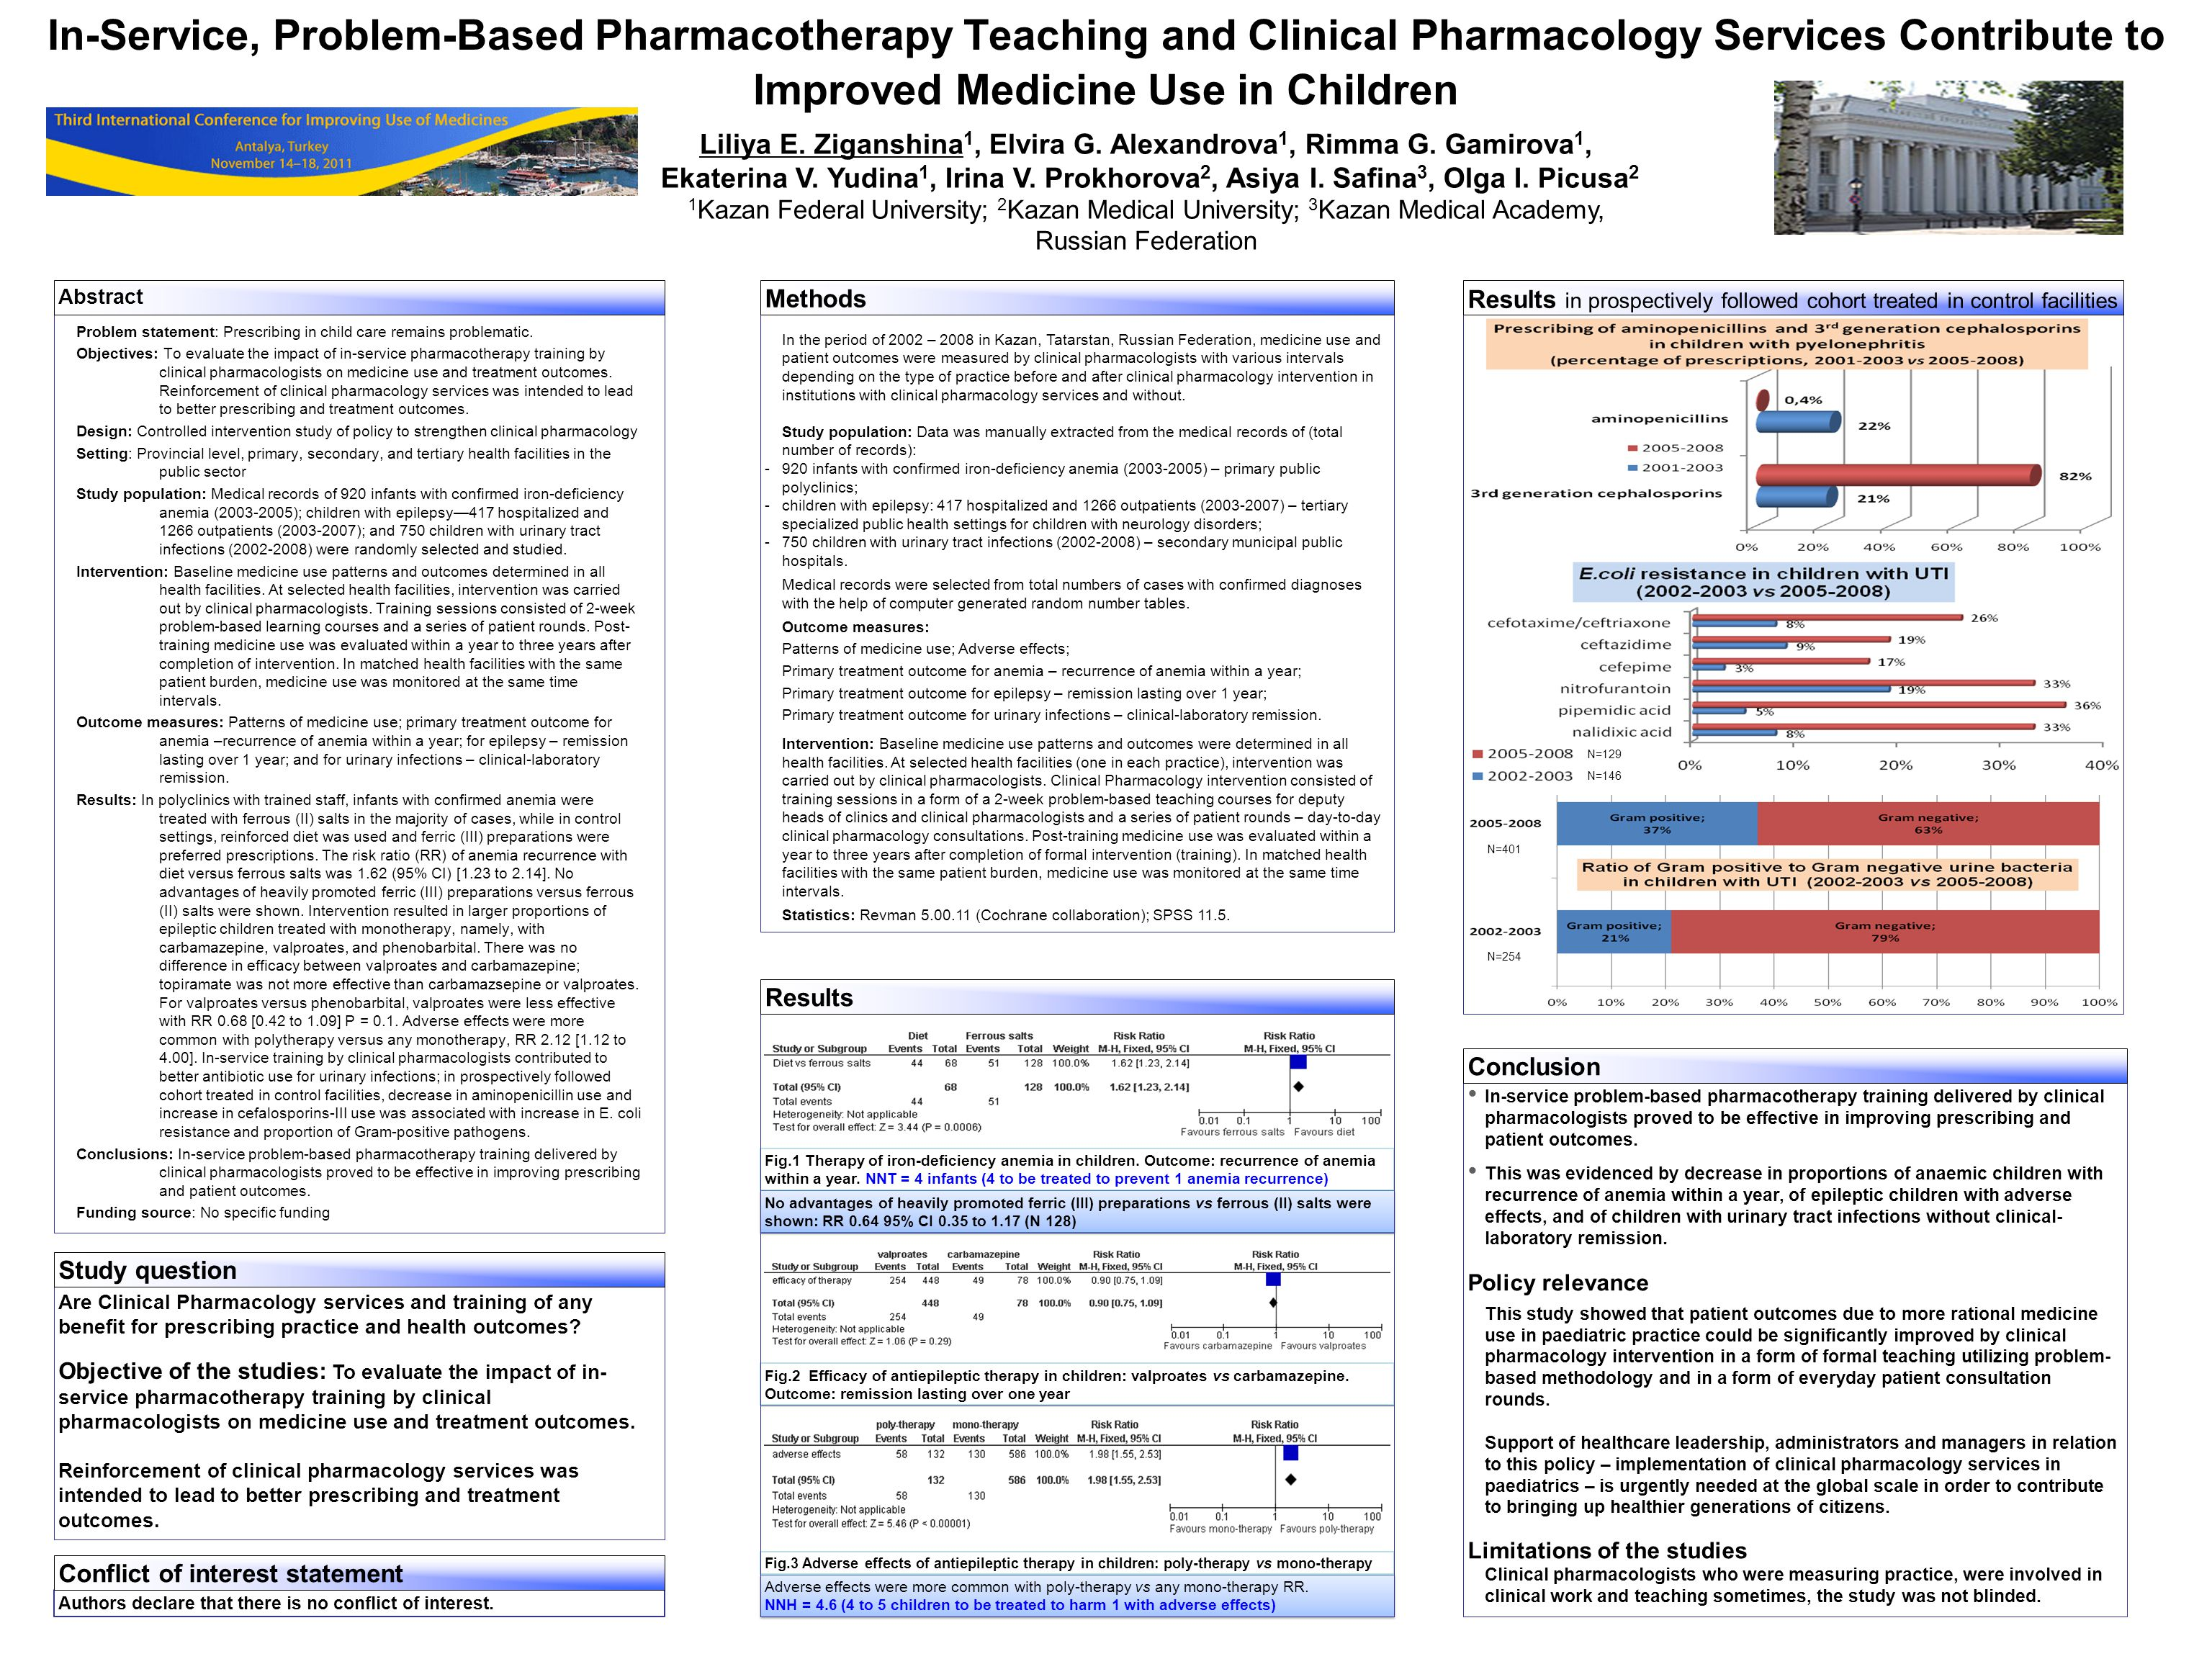 Fig.3 Adverse effects of antiepileptic therapy in children: poly-therapy vs mono-therapy In-Service, Problem-Based Pharmacotherapy Teaching and Clinical Pharmacology Services Contribute to Improved Medicine Use in Children Problem statement: Prescribing in child care remains problematic.